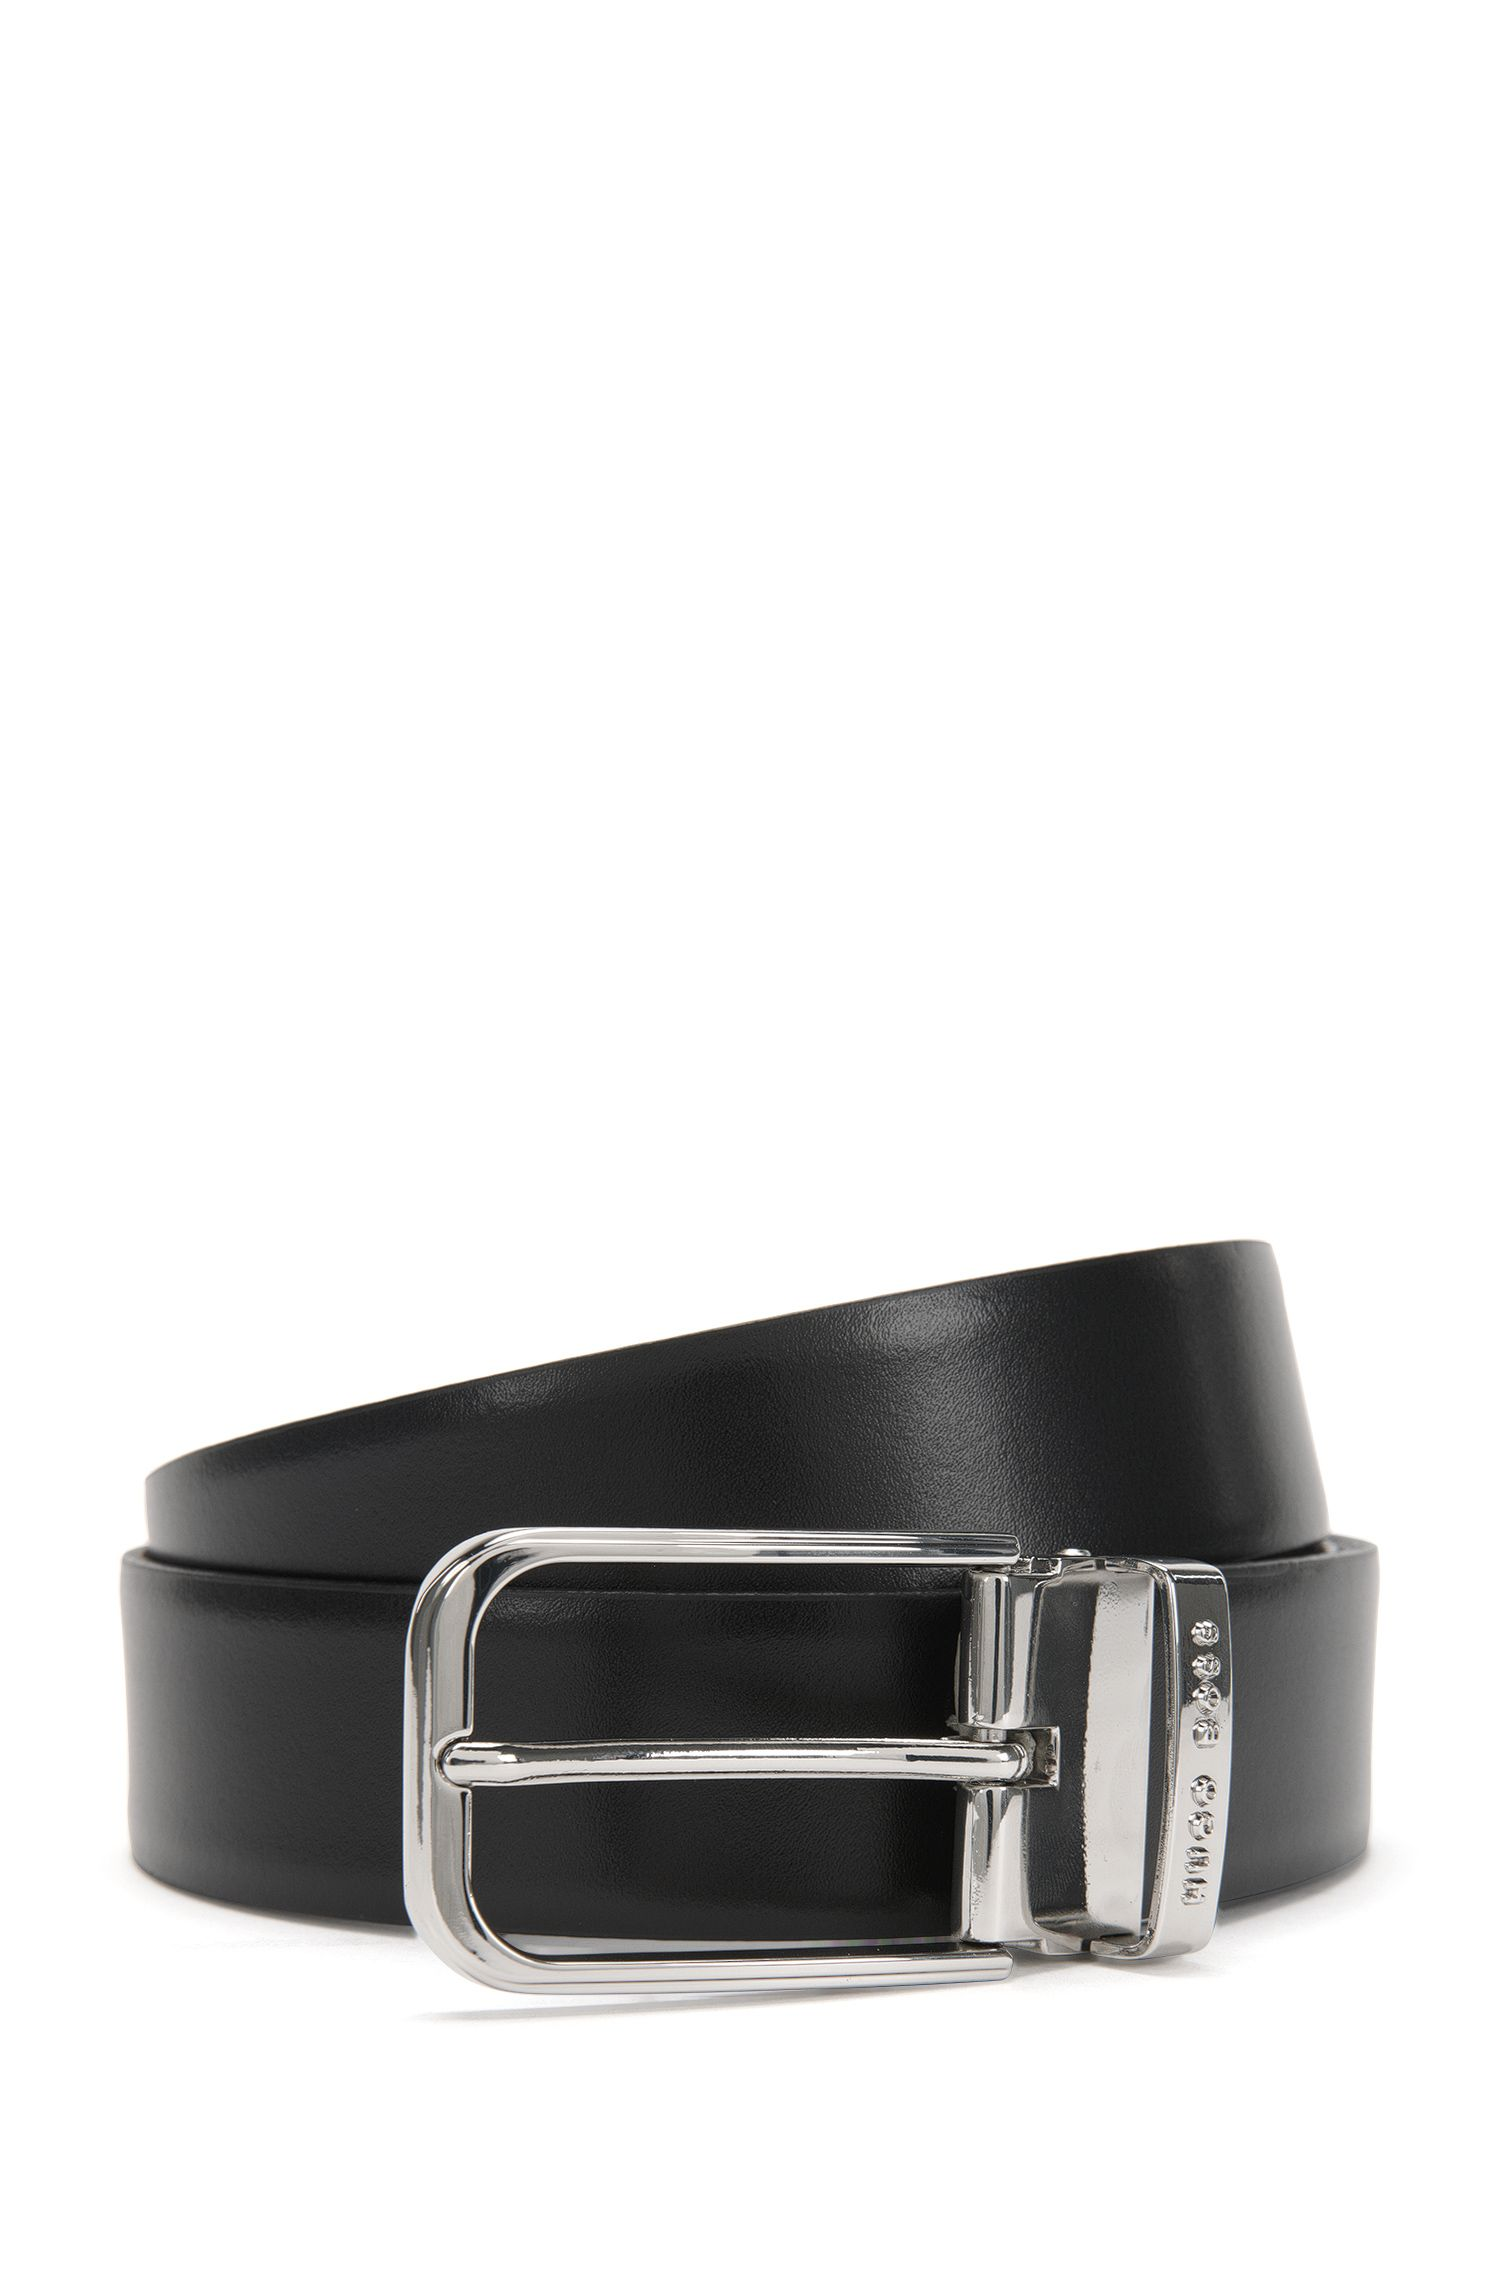 'Garlef Gb35 Ps' | Reversible Italian Leather Belt